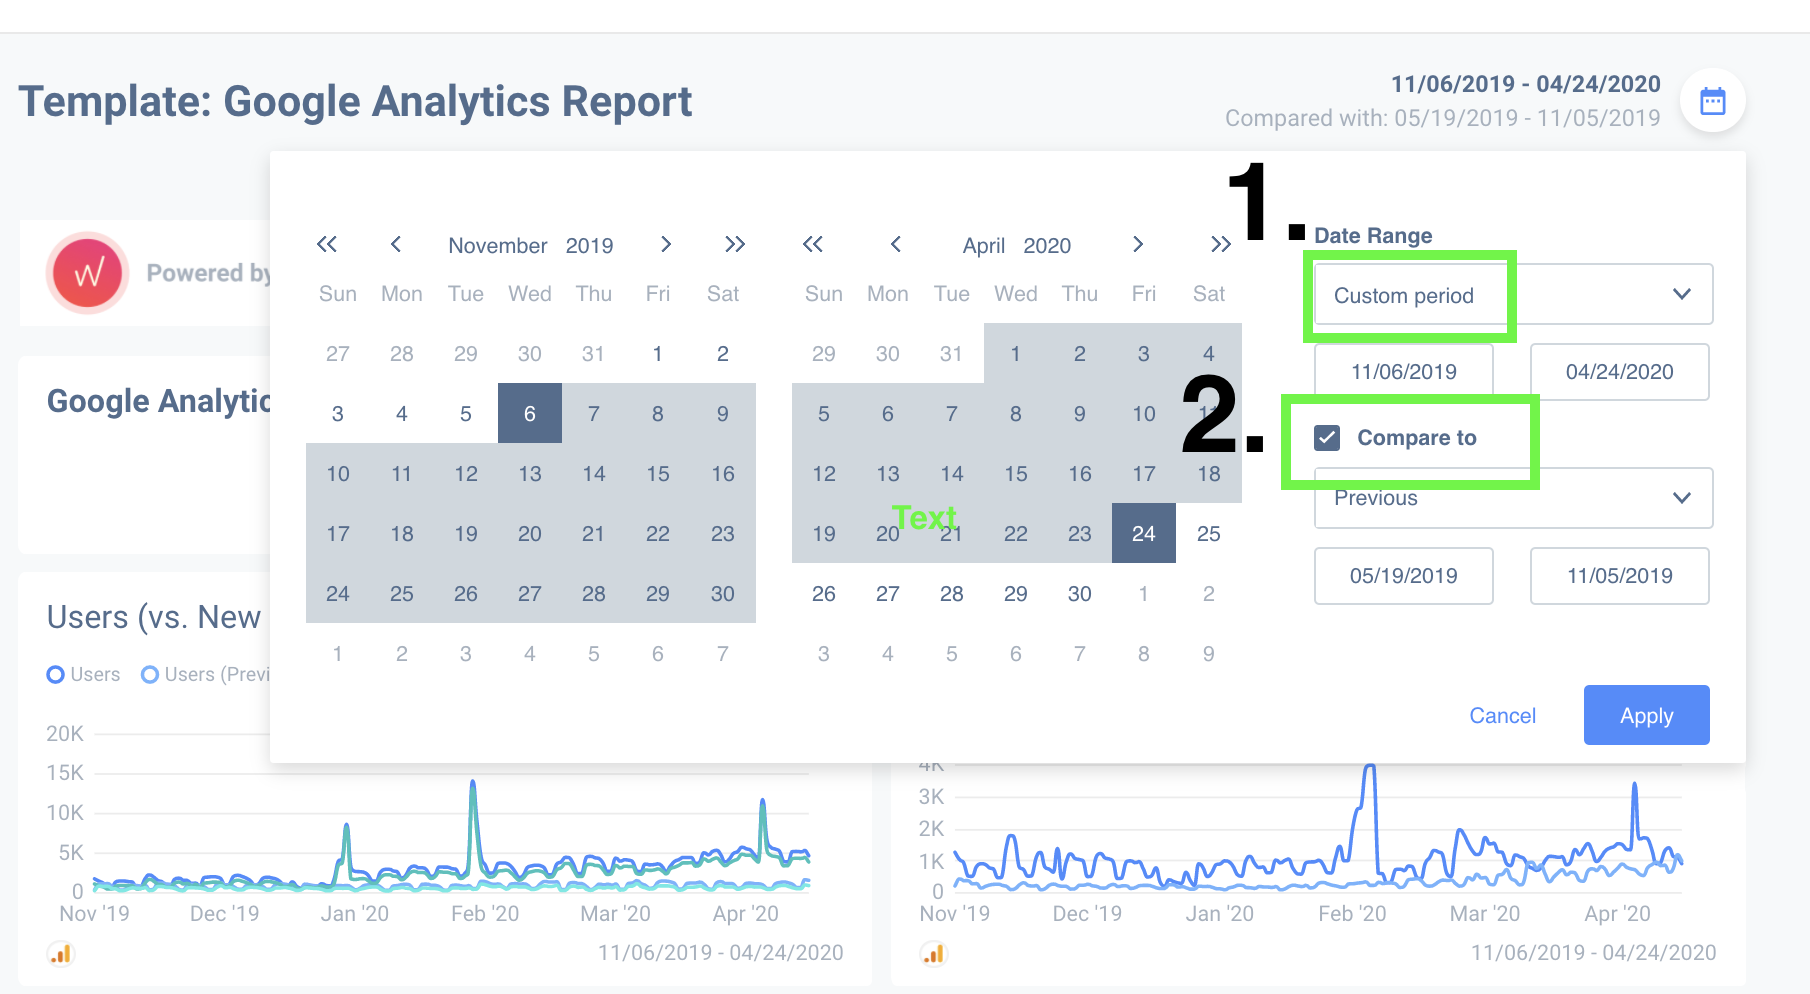 You can compare different date ranges with custom Google Analytics reports.